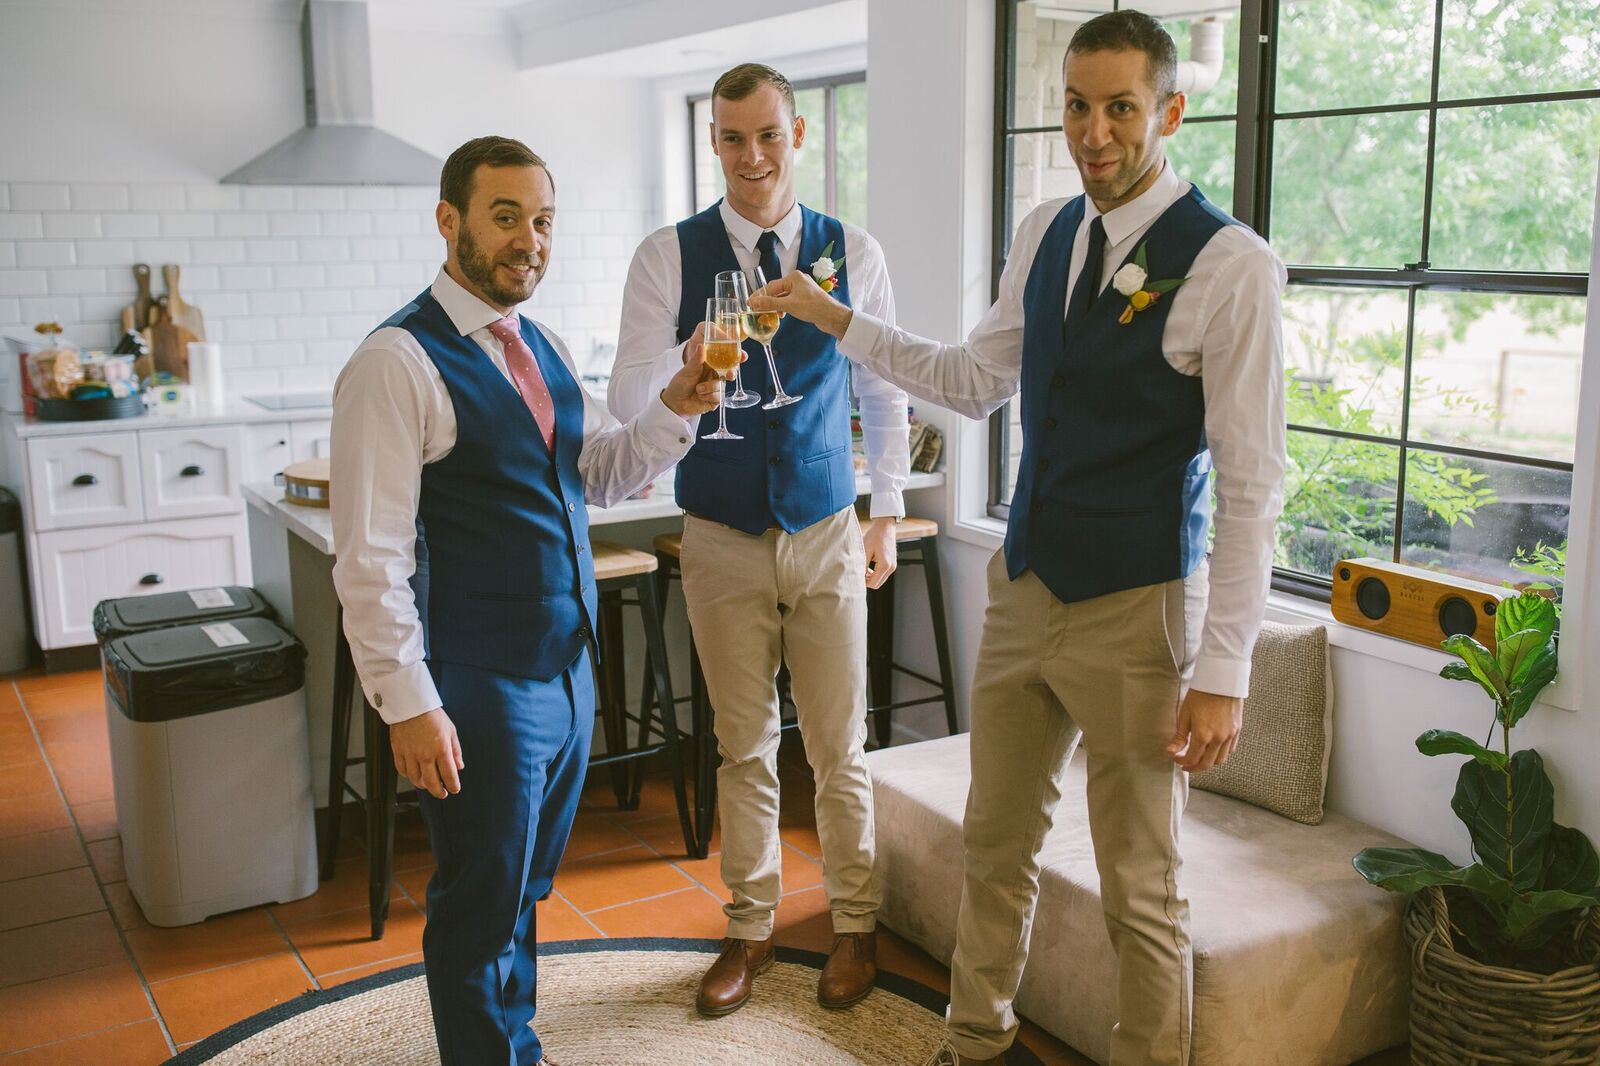 Grooms drinking champagne and saying cheers before the wedding